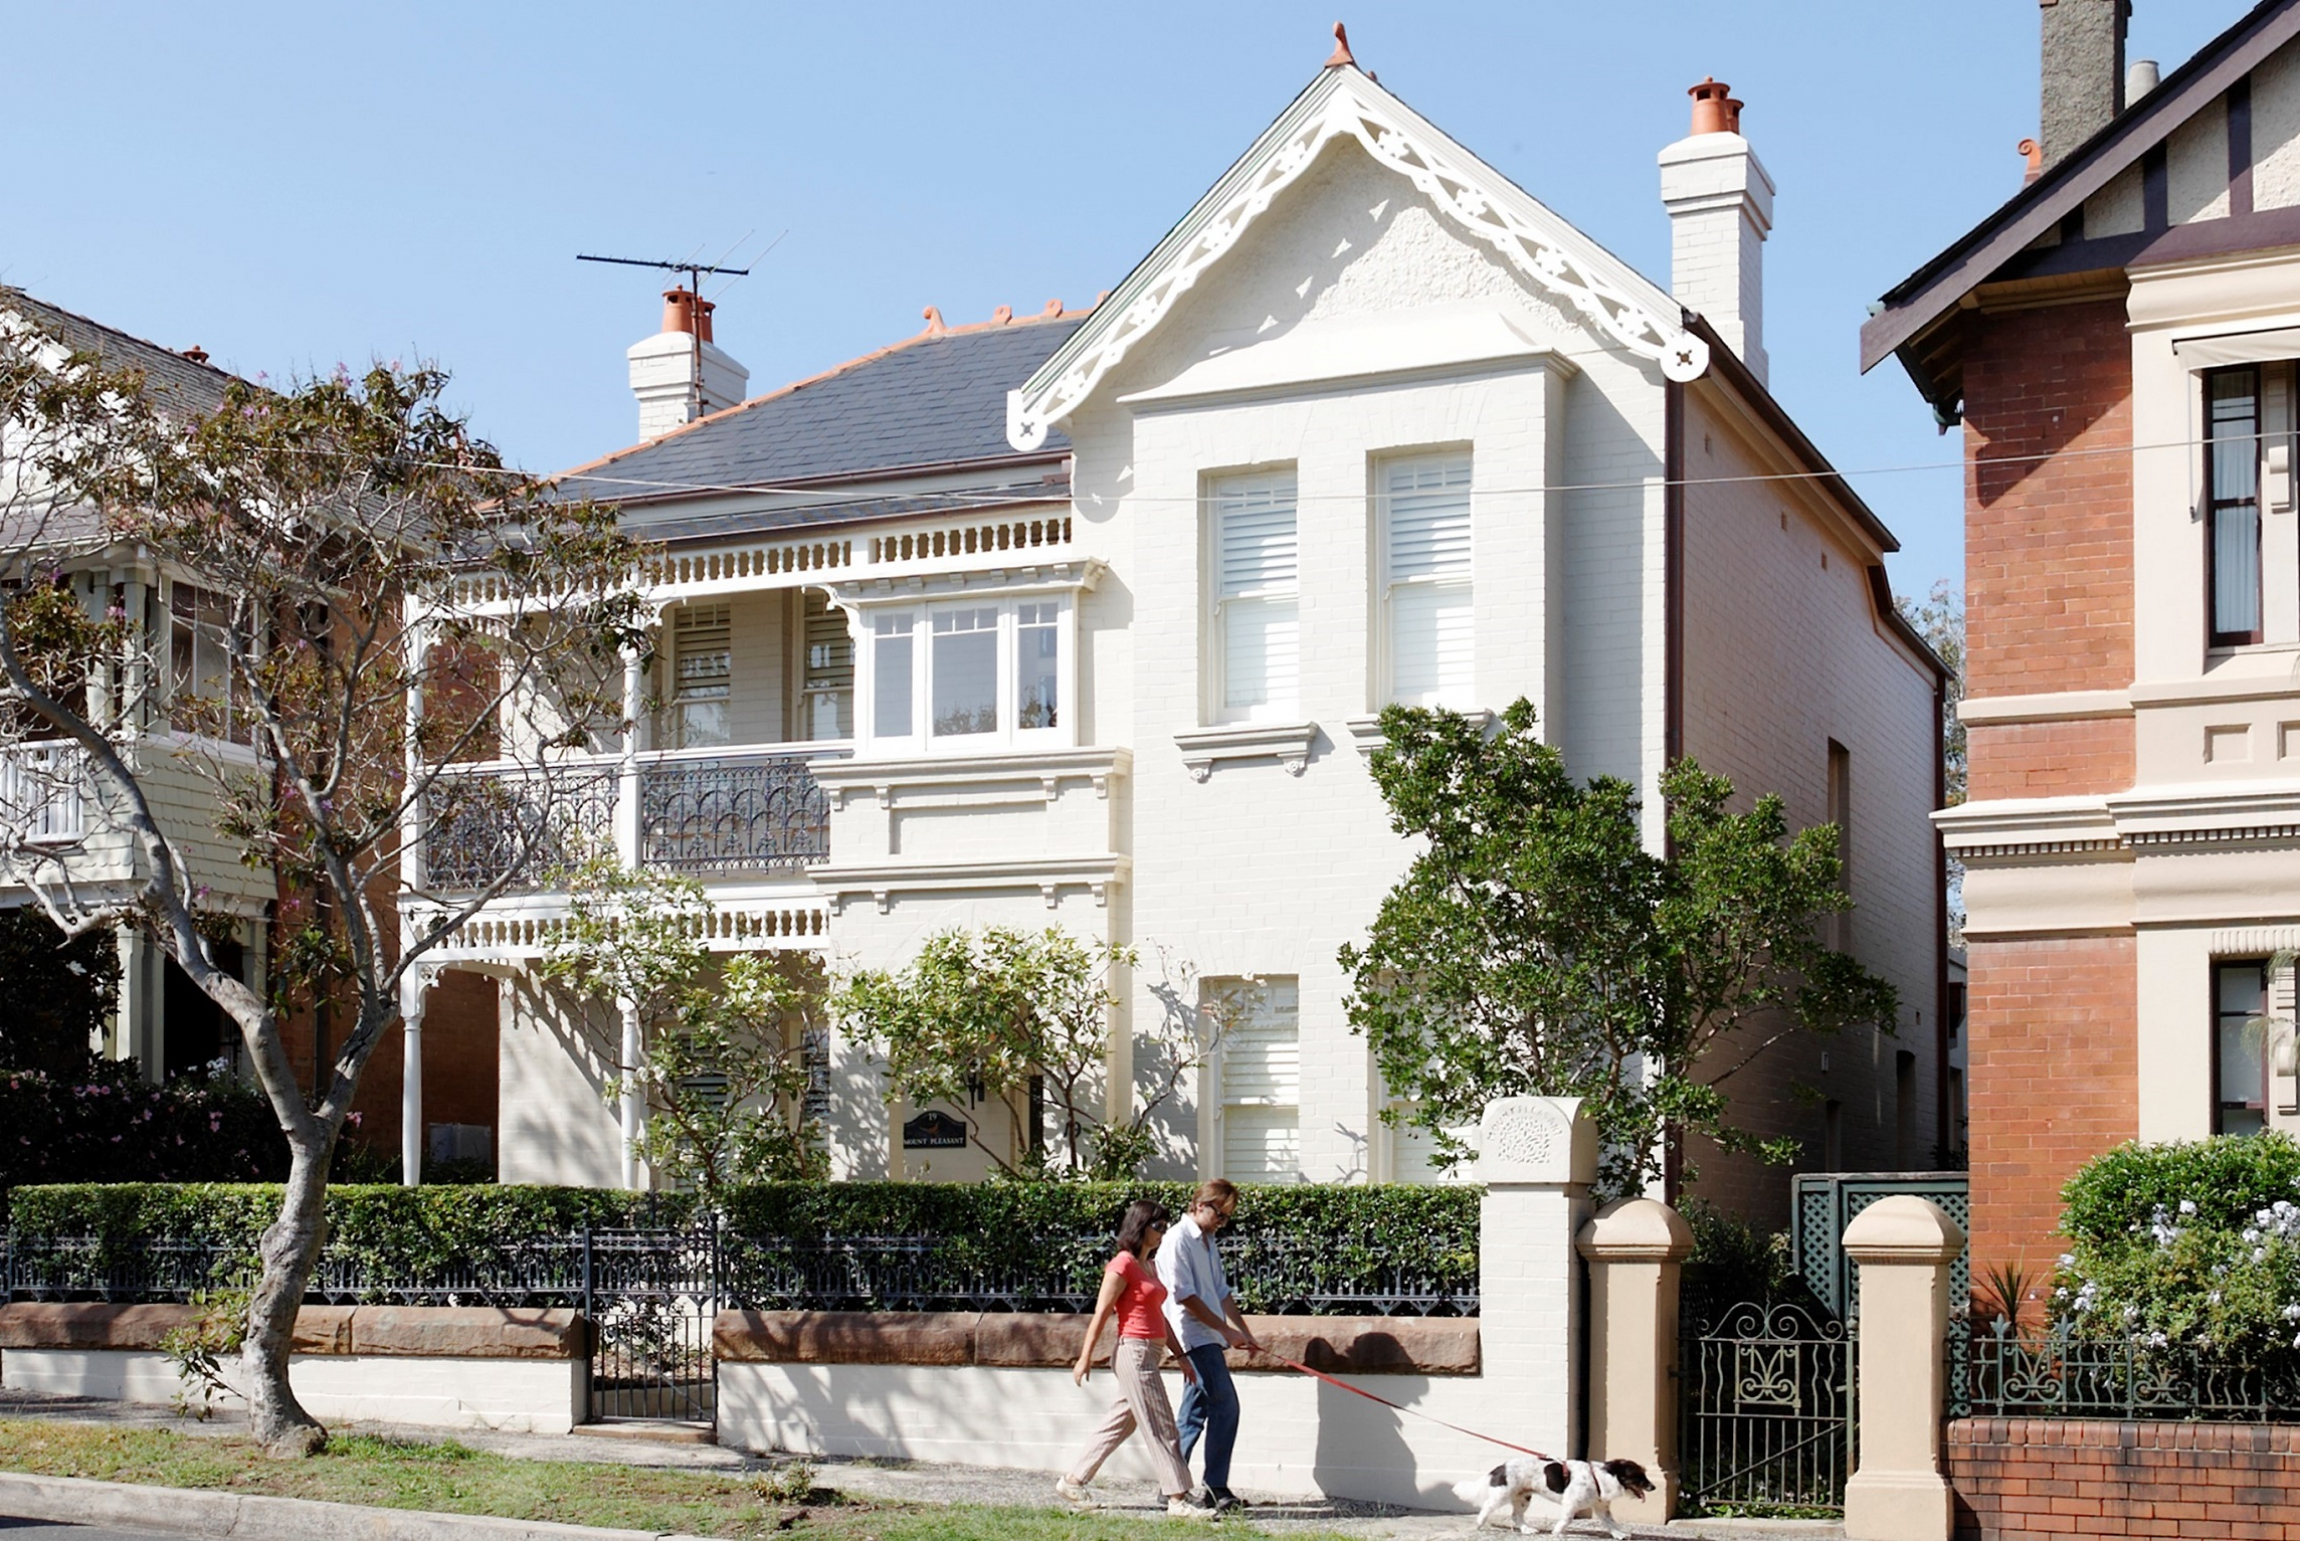 Sydney-Architecture-Townhouse-Heritage-Michael-Bell-Architects